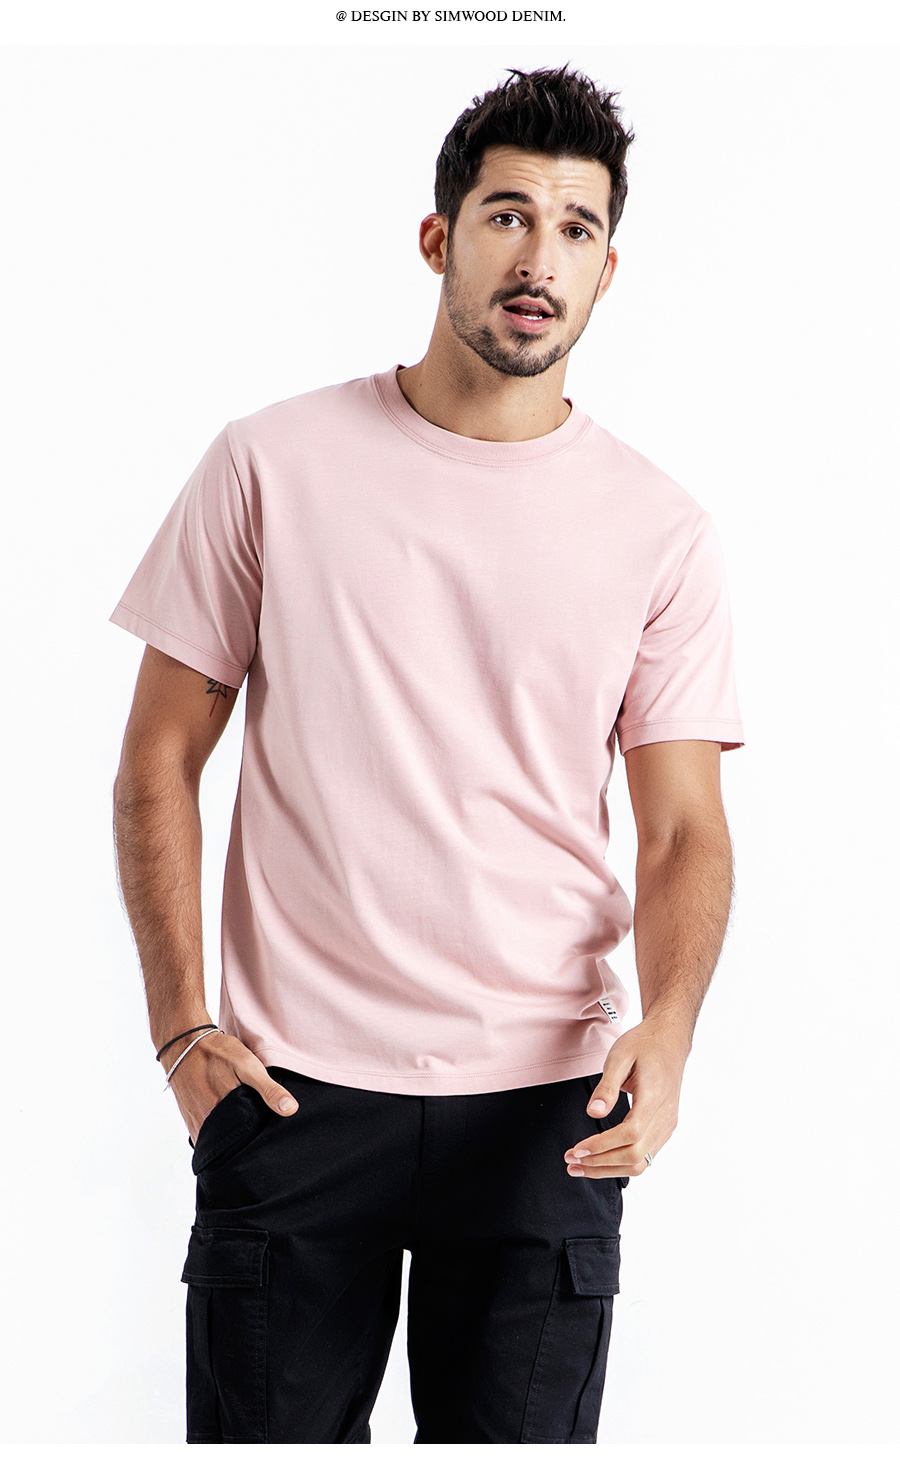 SIMWOOD 19 Summer New T-Shirt Men 100% Cotton Solid Color Casual t shirt Basics O-neck High Quality Plus Size Male Tee 190004 16